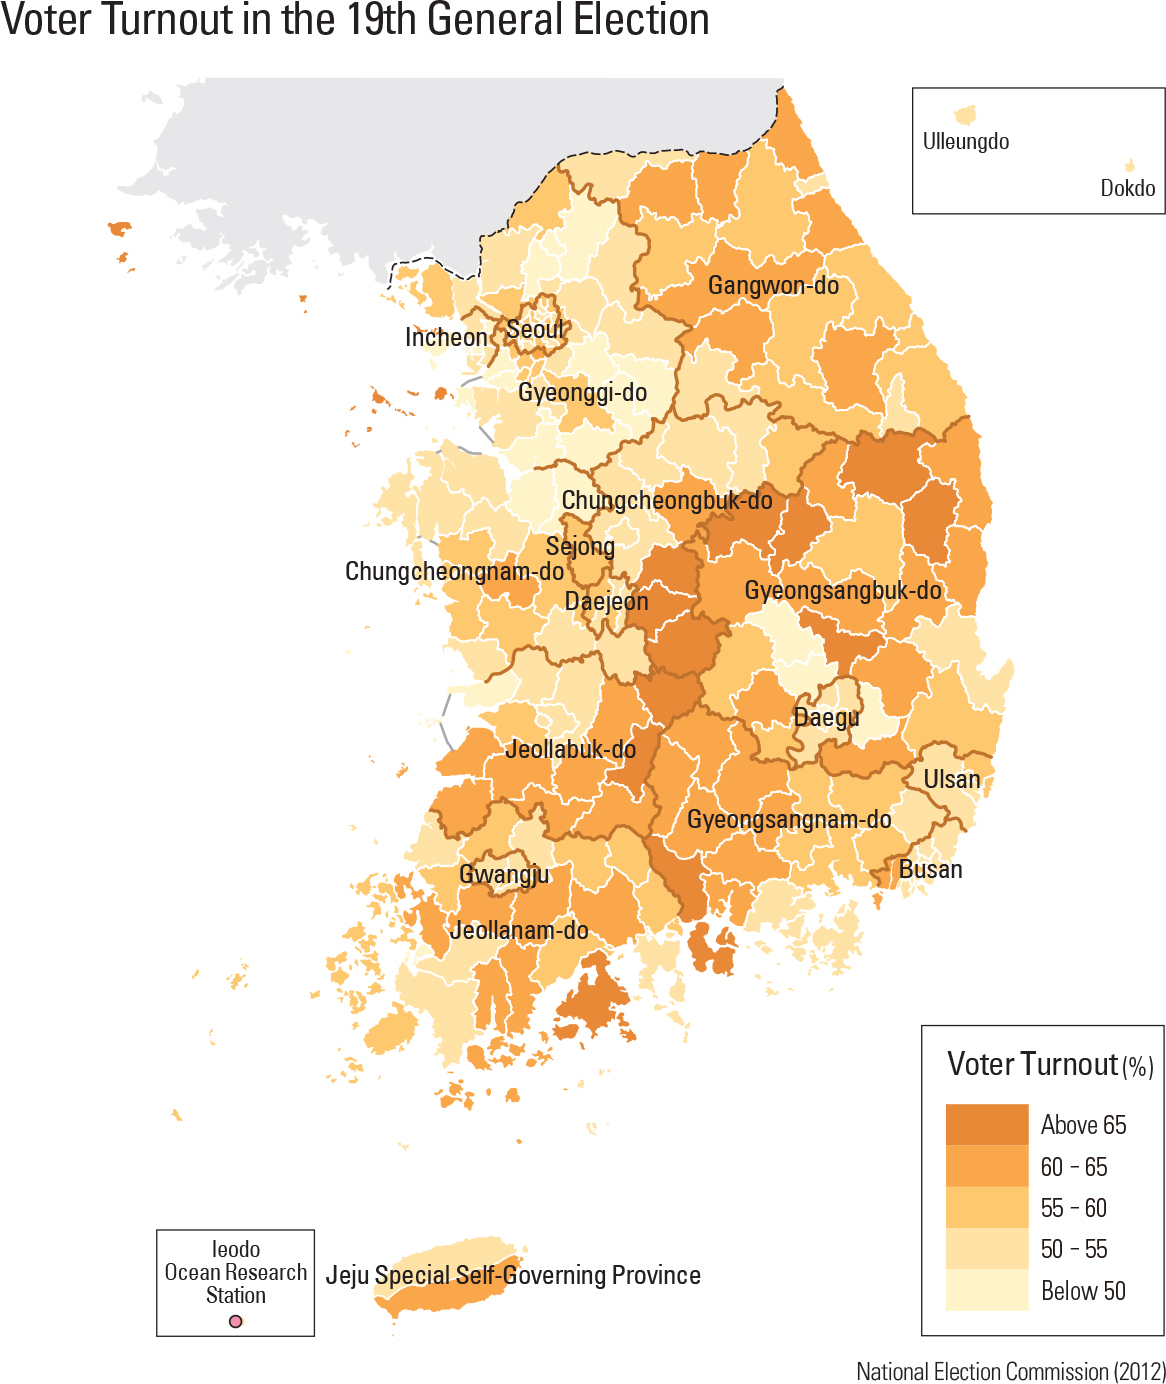 Voter Turnout in the 19th General Election